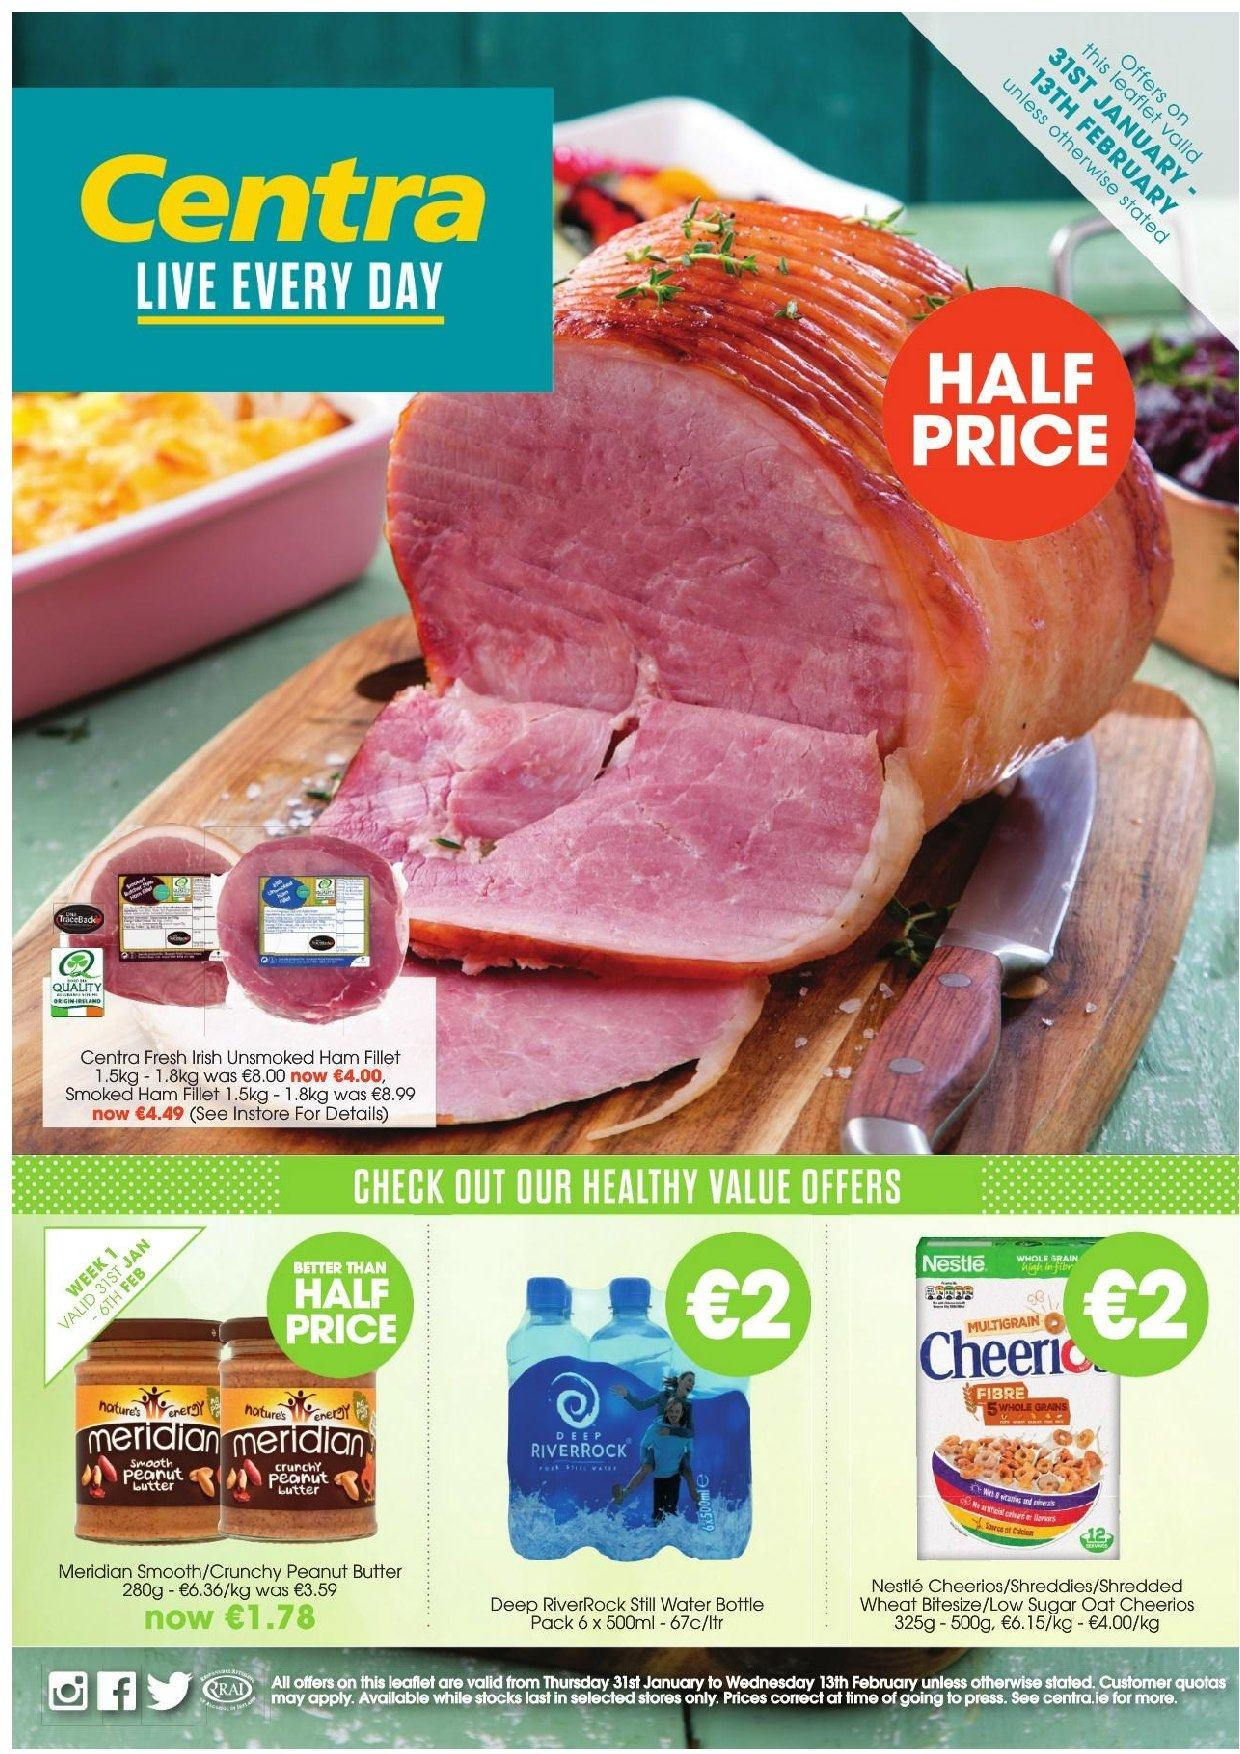 Centra offer  - 31.1.2019 - 13.2.2019 - Sales products - bottle, butter, nestlé, sugar, ham, cheerios, peanut butter, peanuts, smoked ham, water bottle. Page 1.